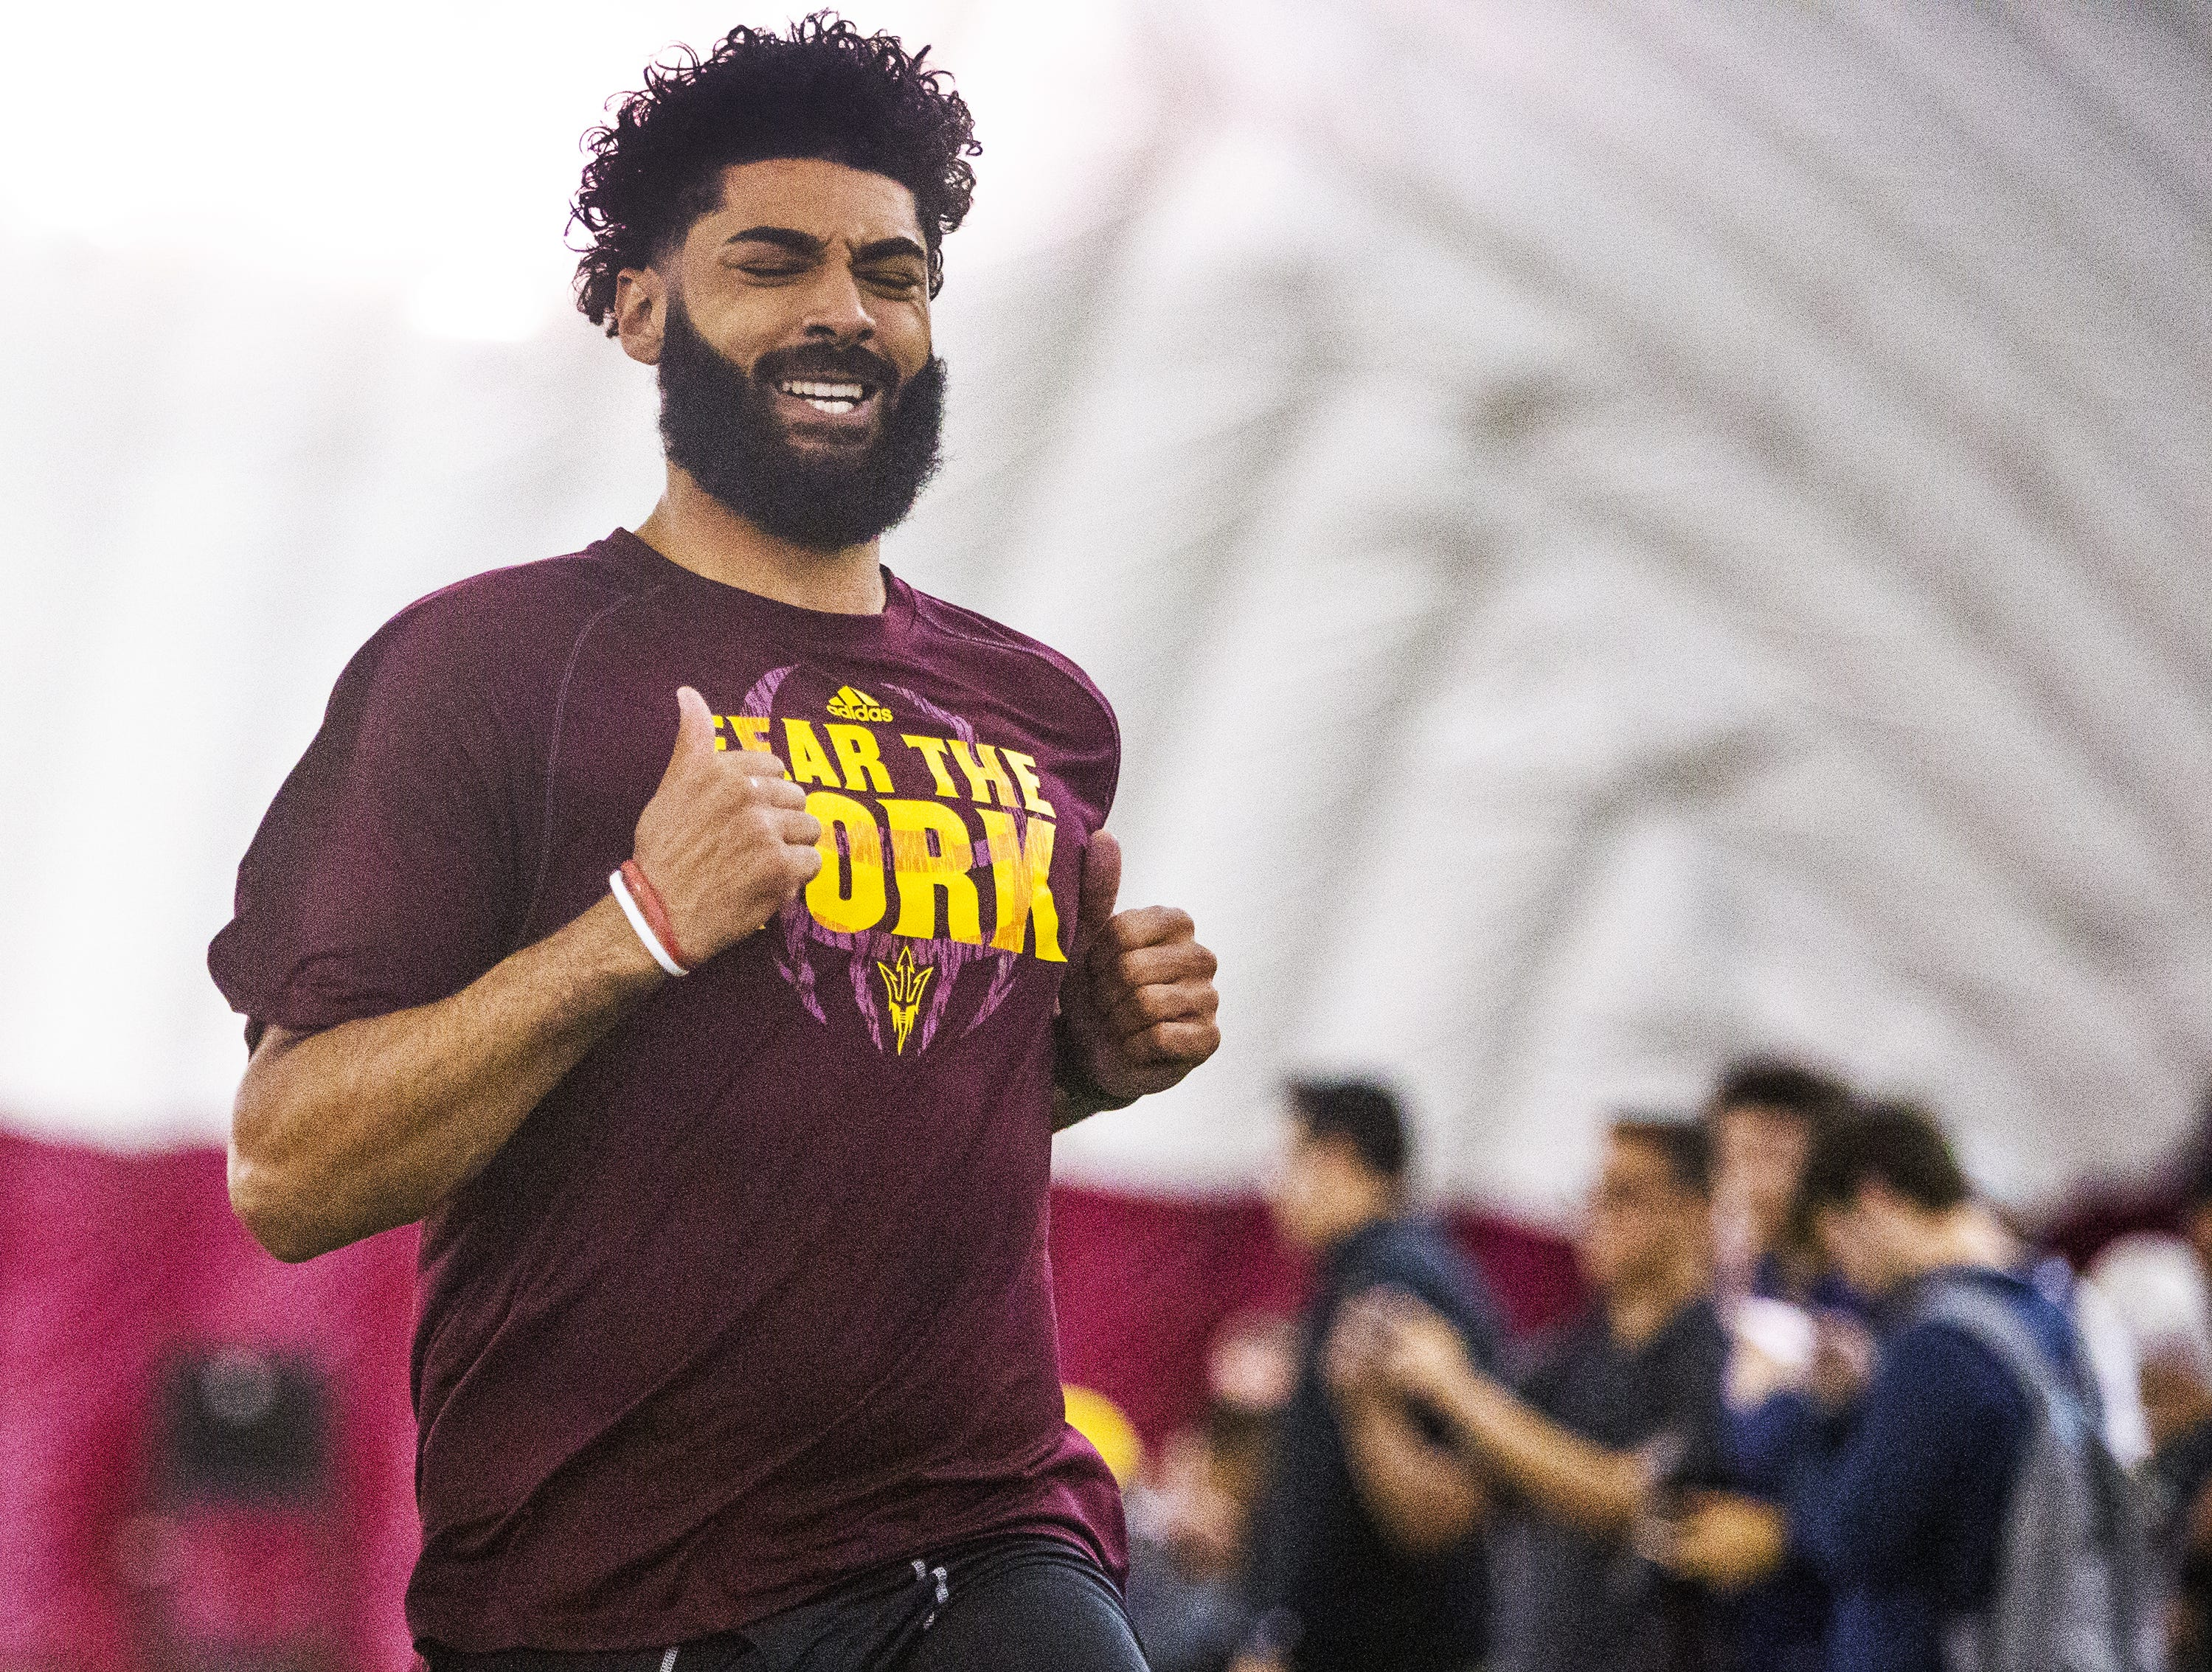 Former Arizona State University quarterback Manny Wilkins, Jr., runs the dash at the 2019 Football Pro Day held on campus, Wednesday, March 27, 2019.